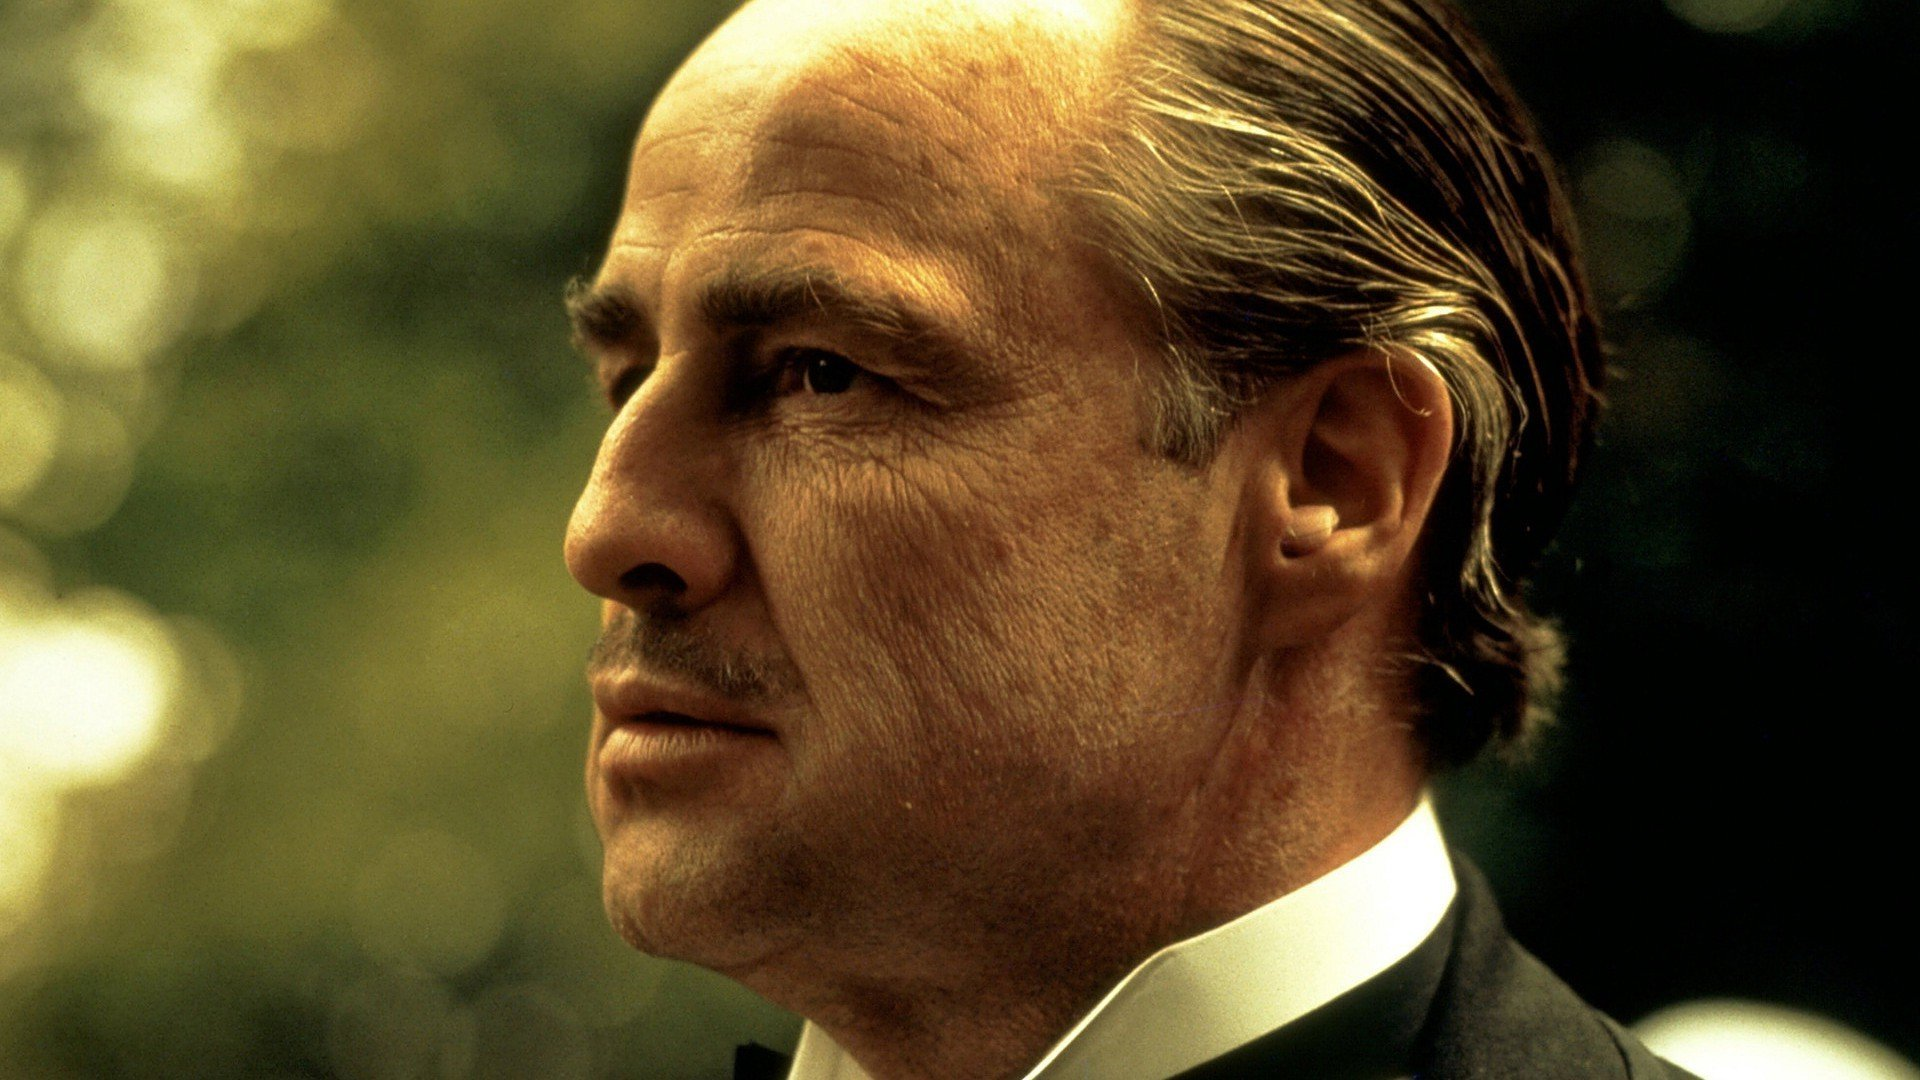 movies The Godfather Vito Corleone Wallpapers HD 1920x1080